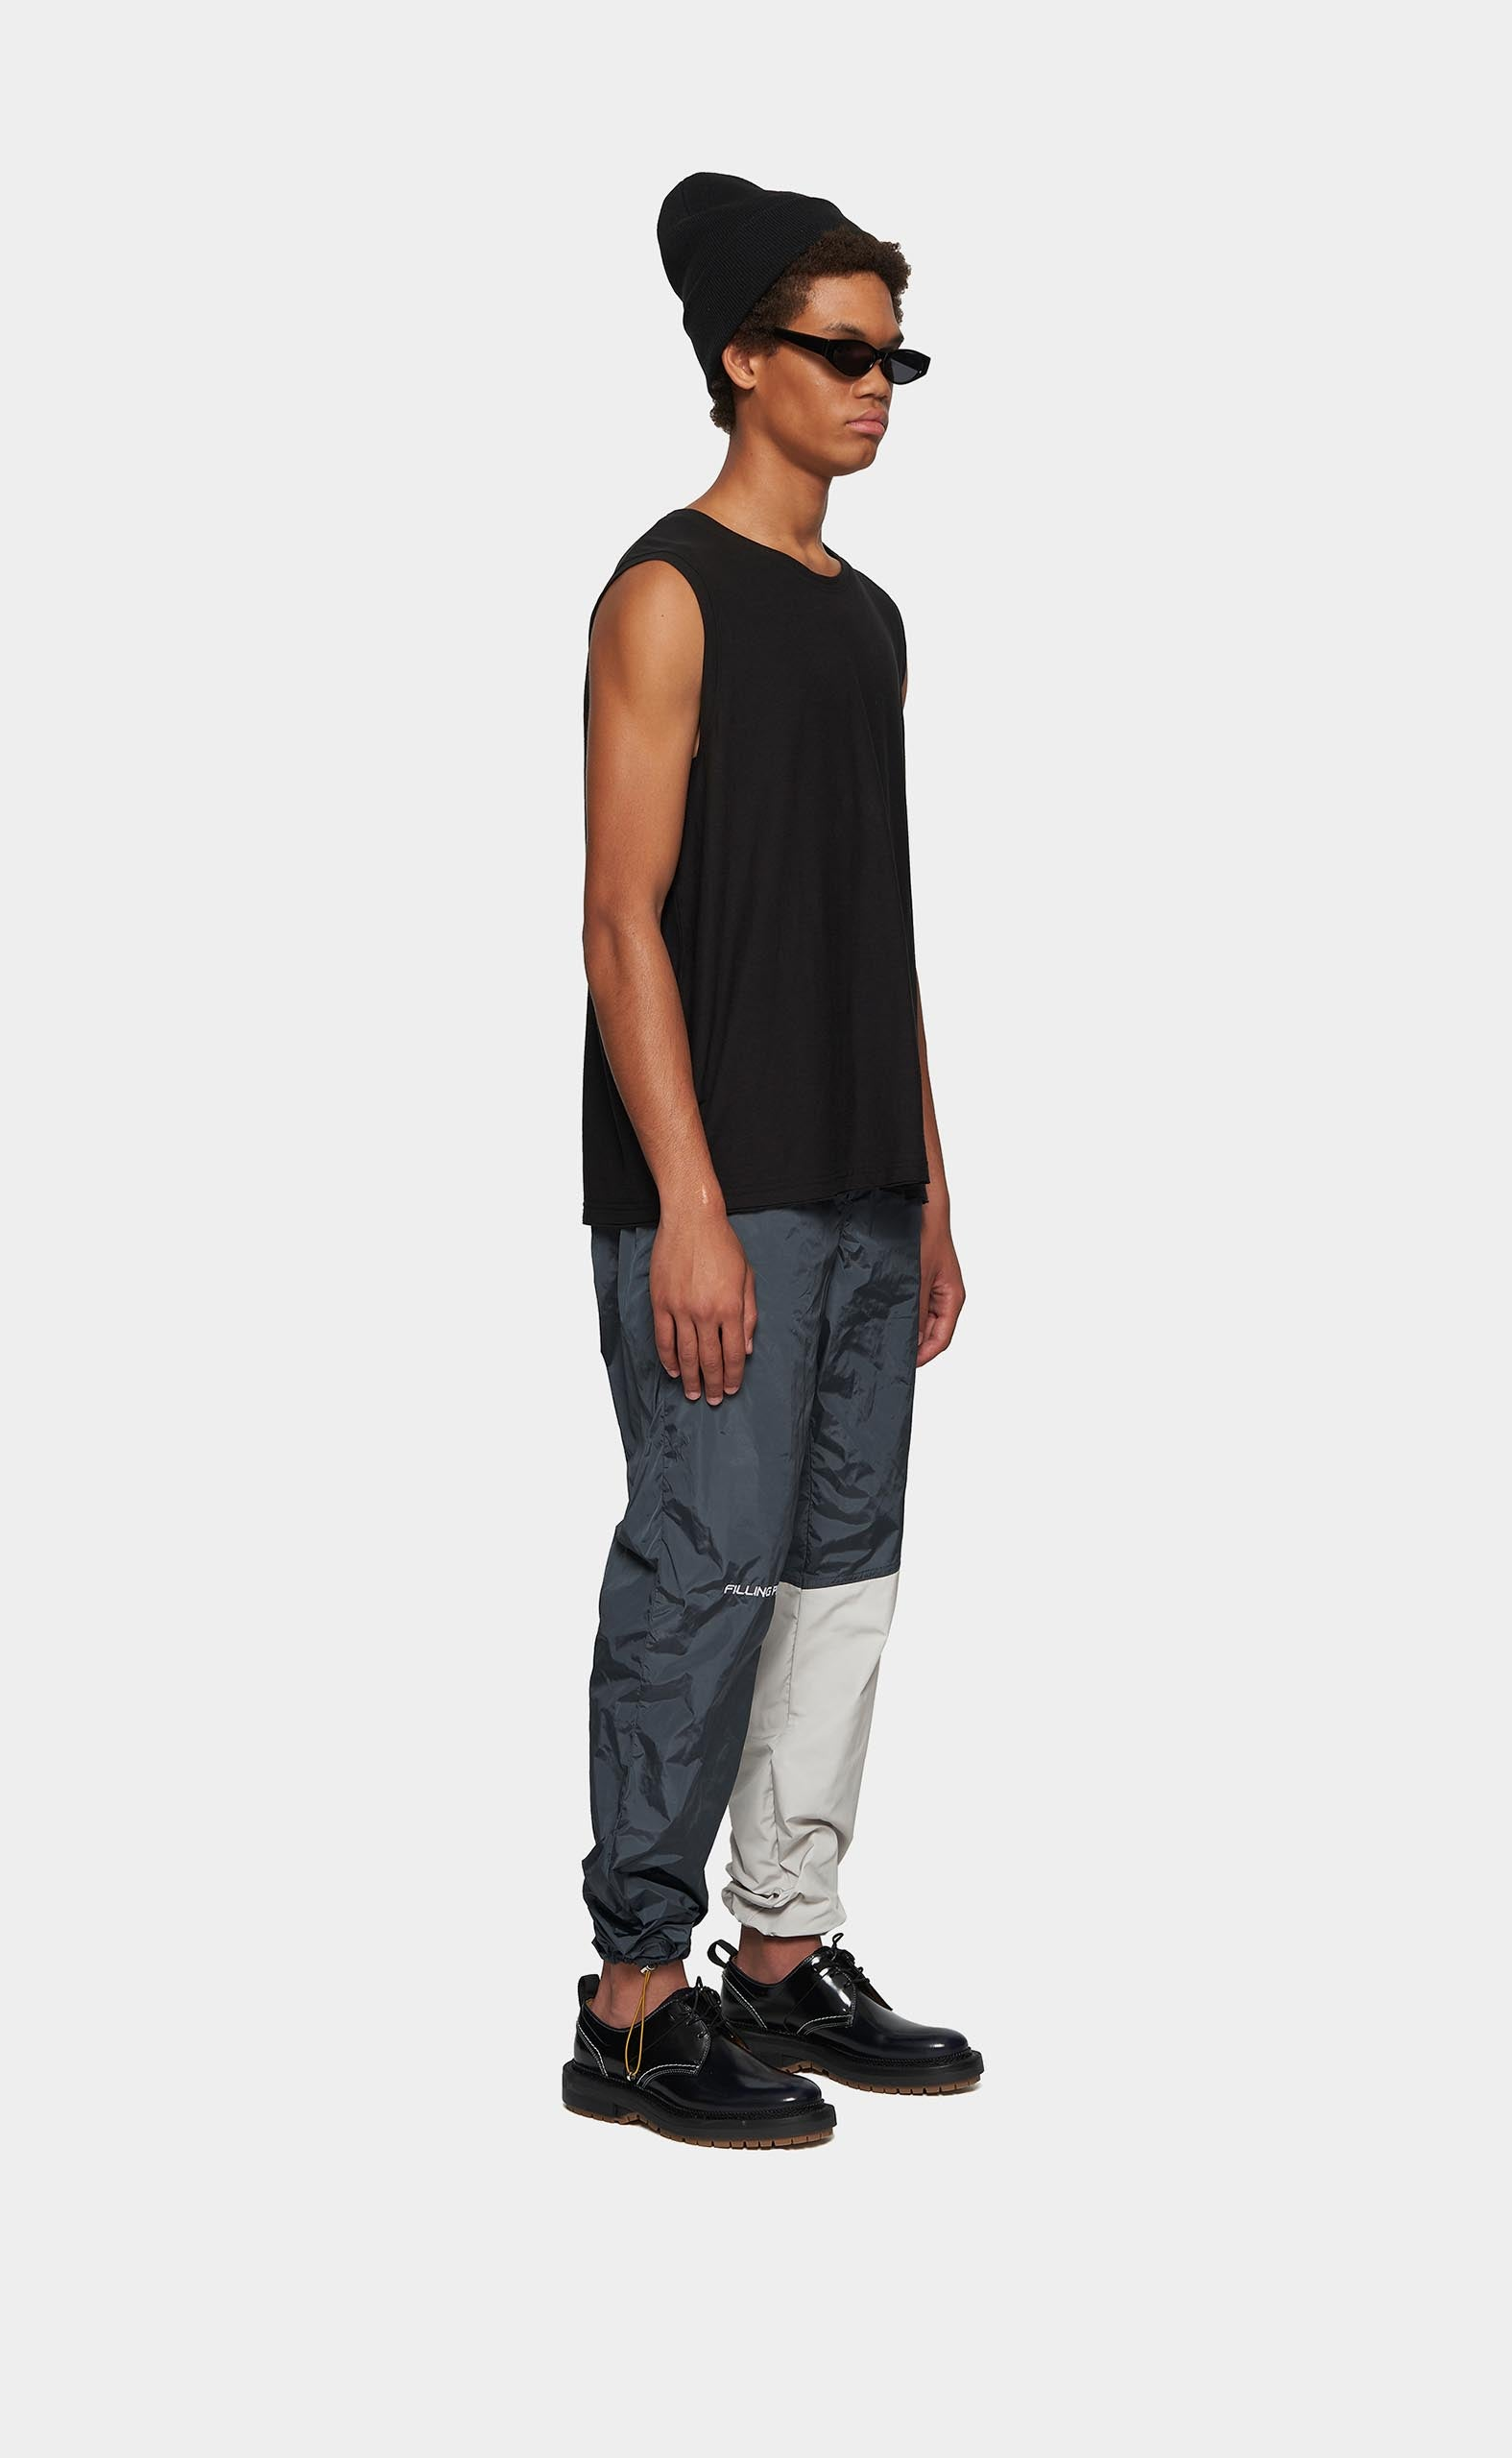 Paneled Pants Cement Grey/Off White